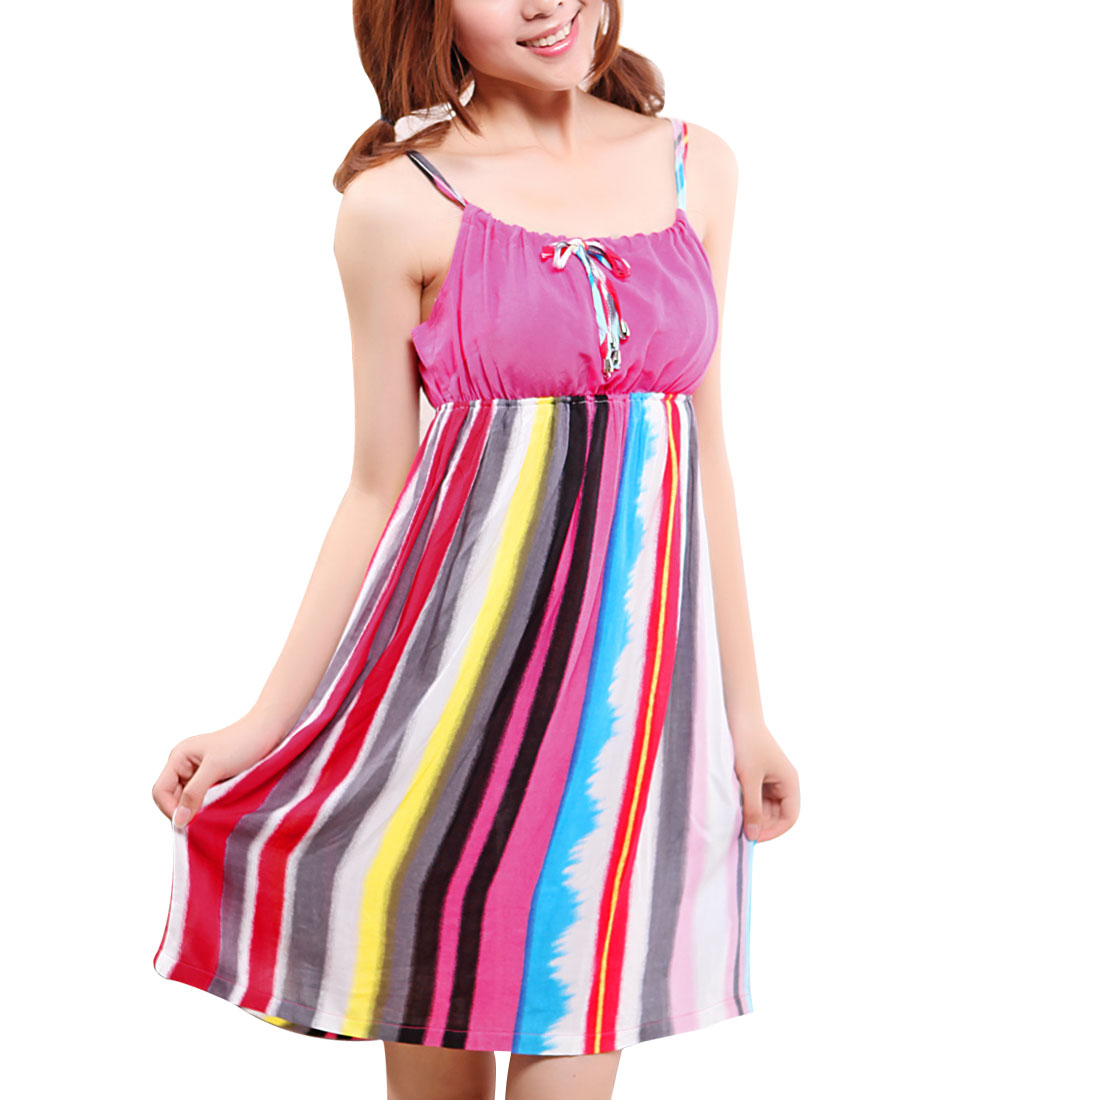 Ladies Colorful Vertical Striped Pattern Nightgown Sleep Dress XS